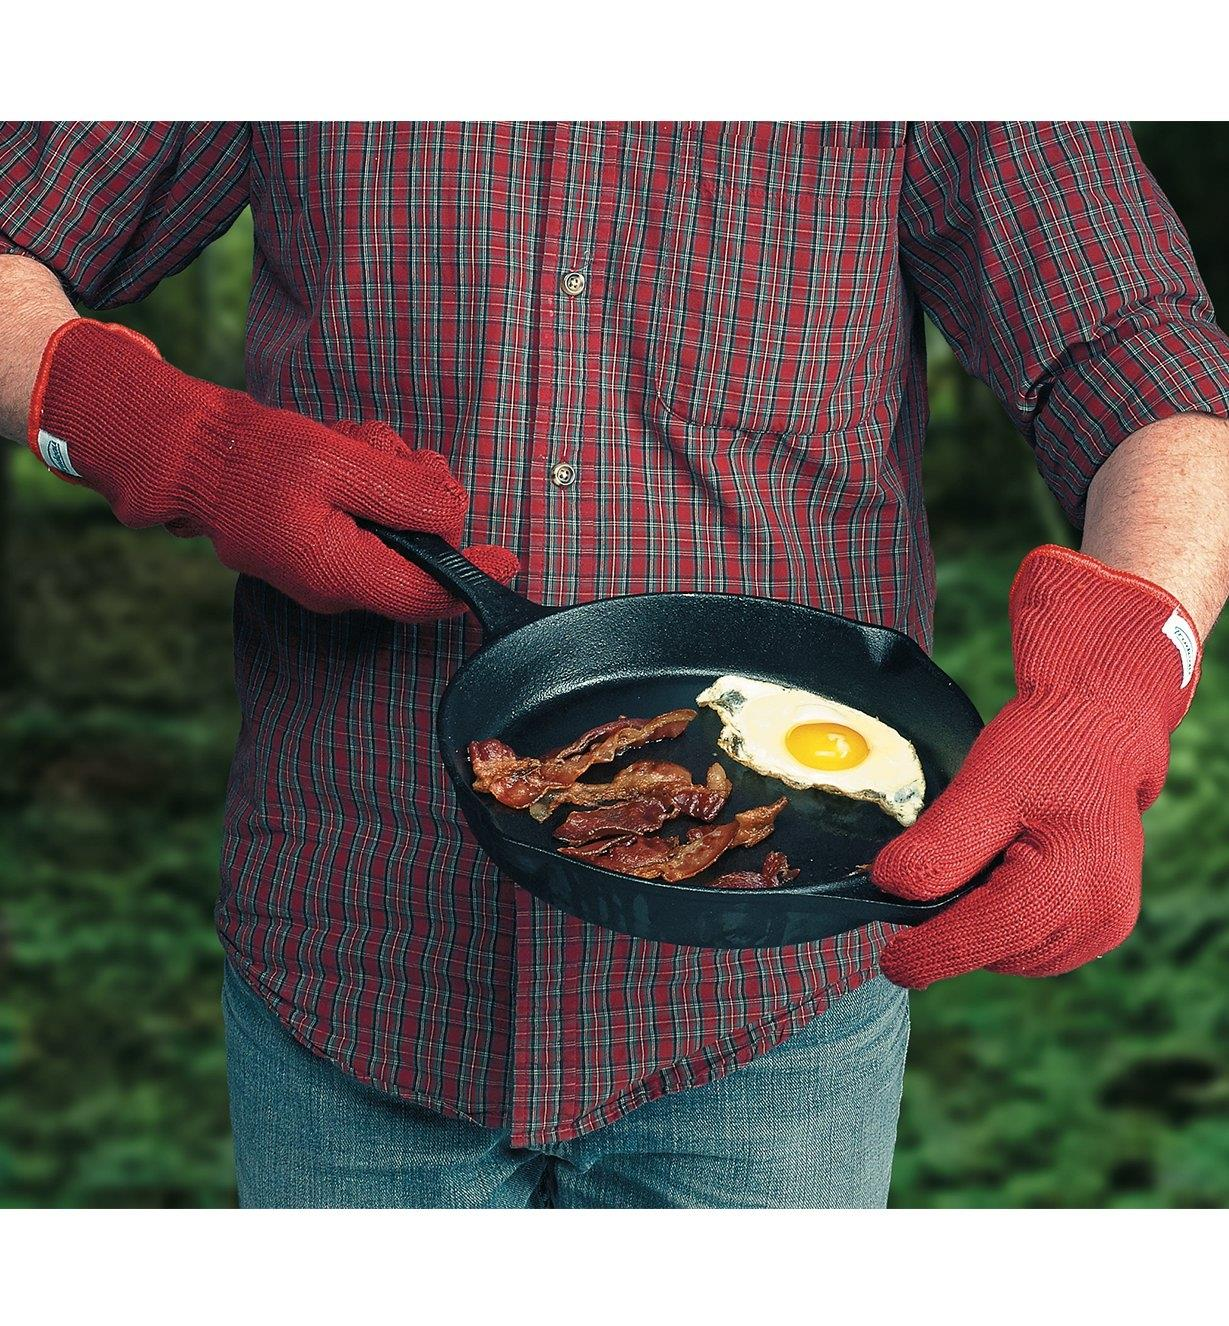 Oven gloves worn while handling a cast-iron frying pan